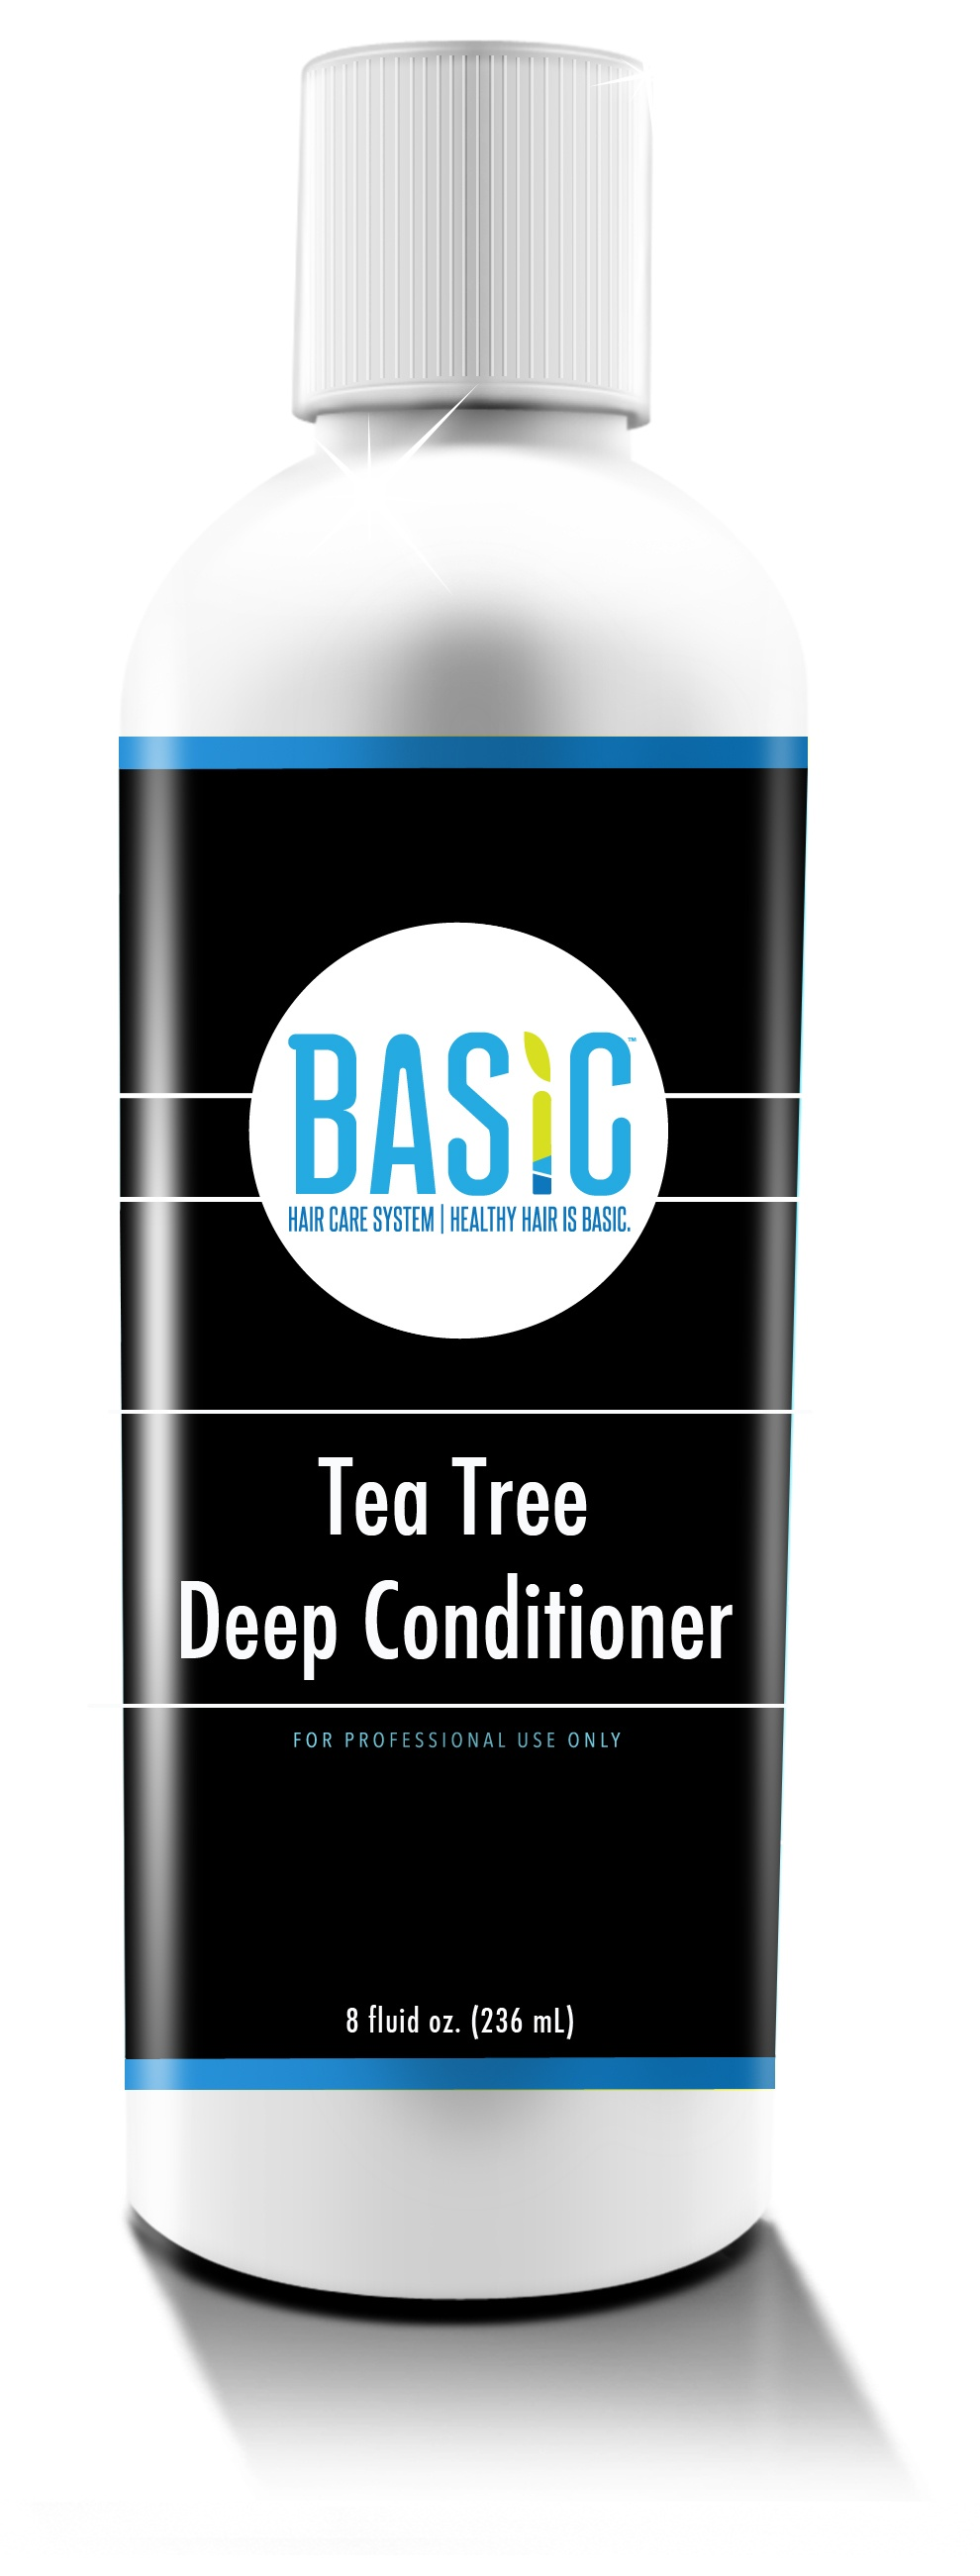 Tea Tree Deep Conditioner